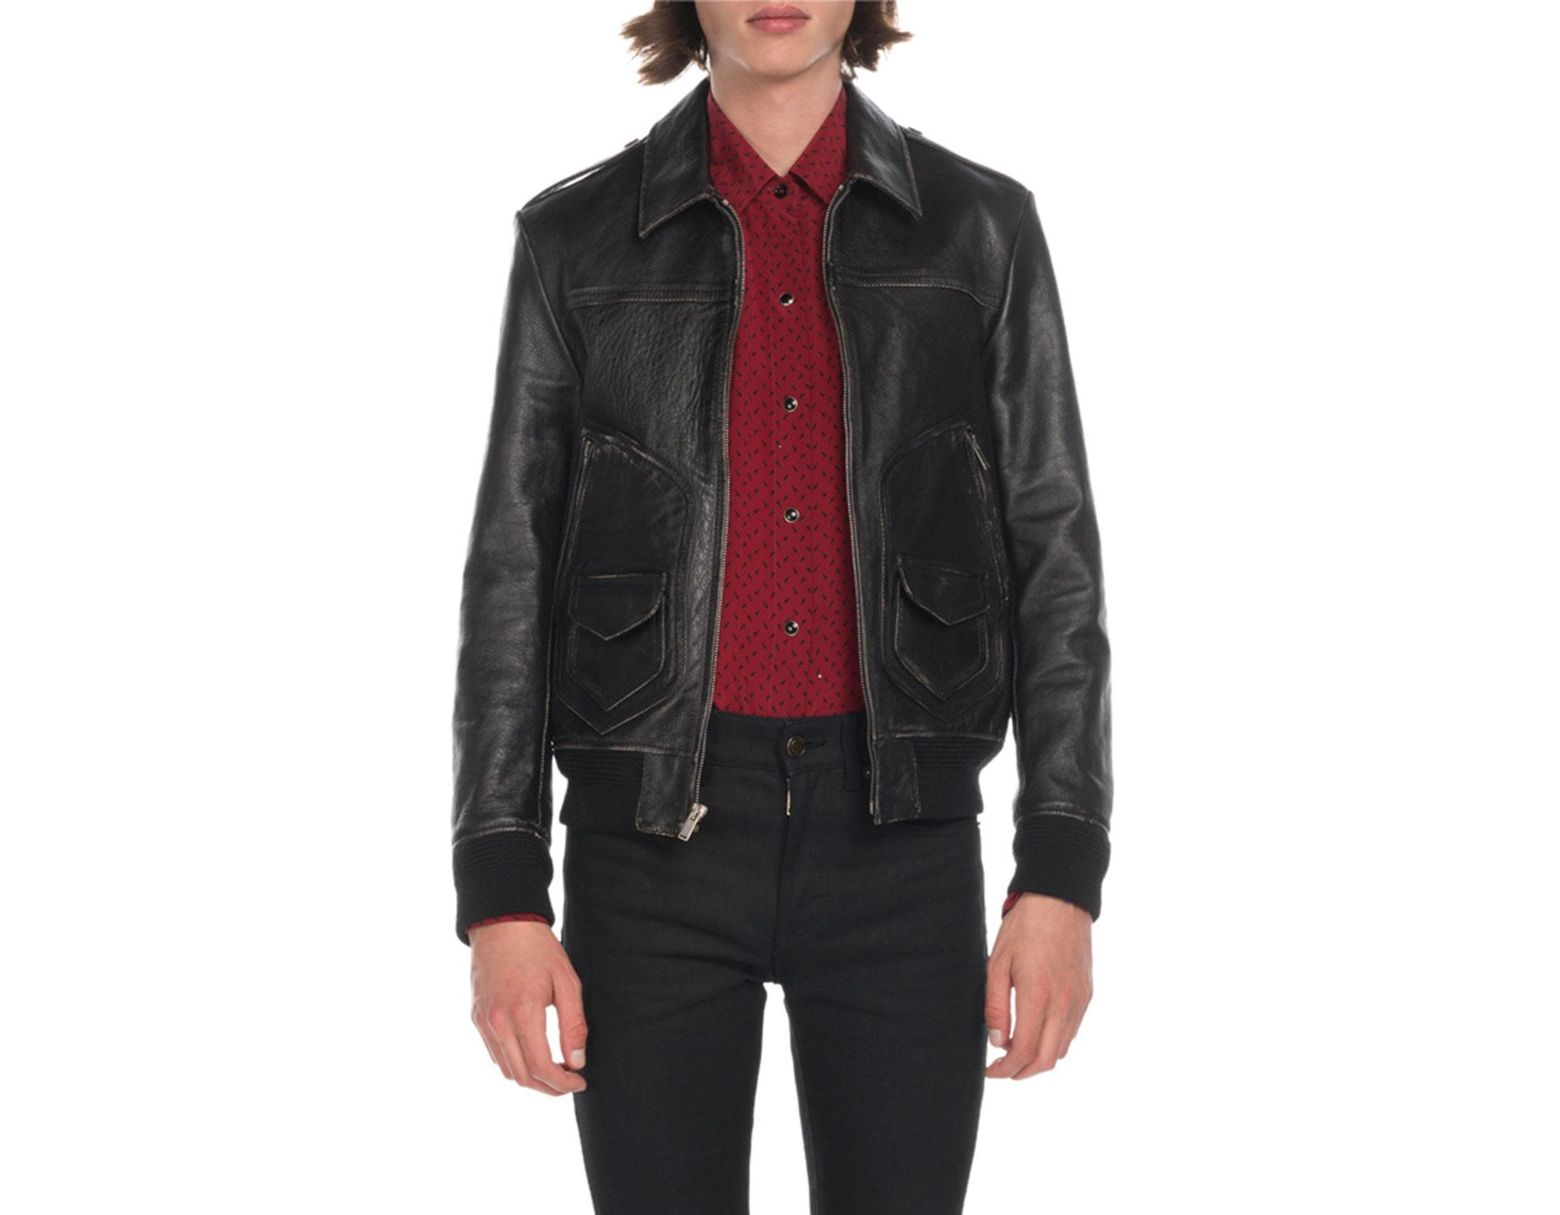 308b6937ae2 Saint Laurent Men's Distressed Leather Bomber Jacket in Black for Men - Lyst